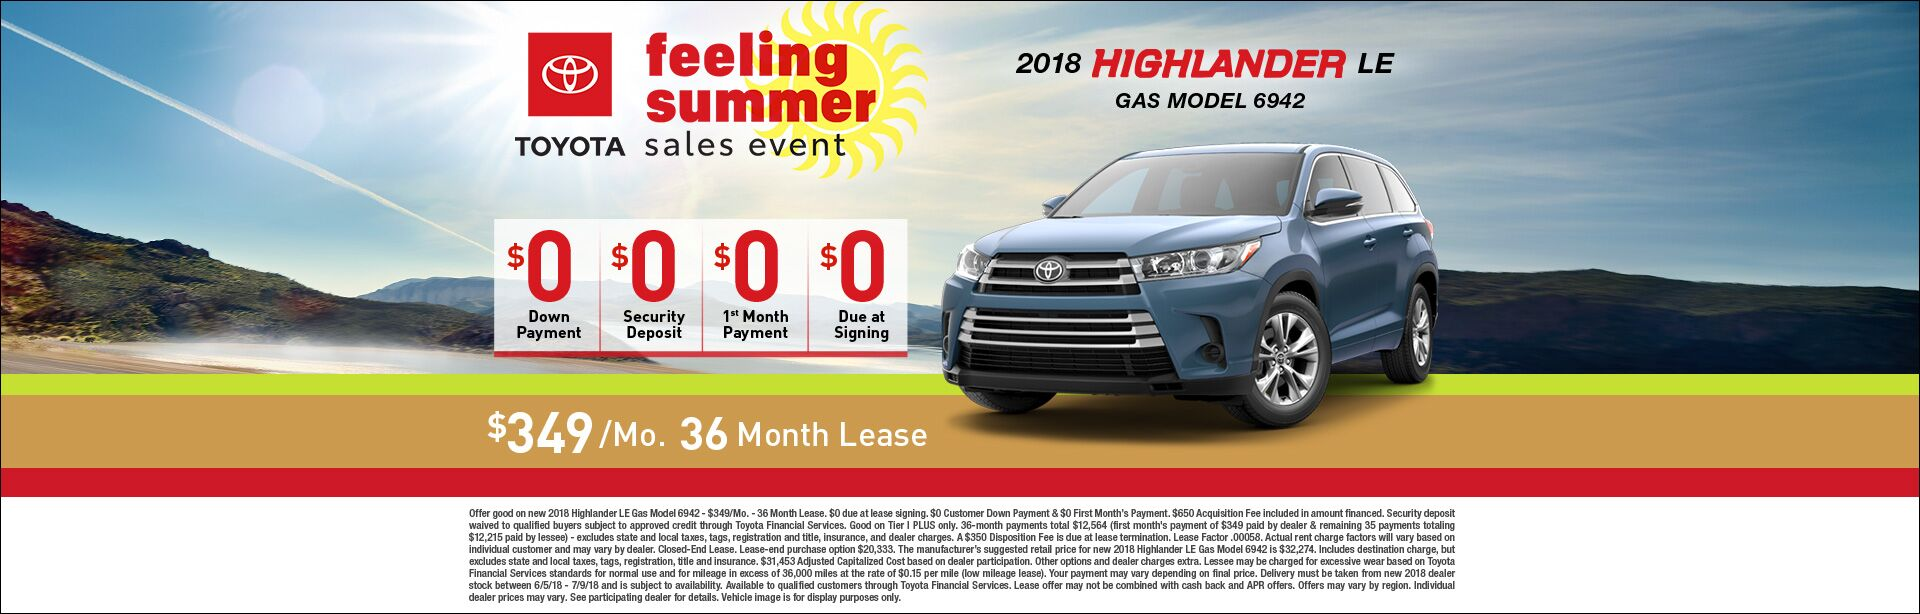 Feeling Summer Highlander Lease